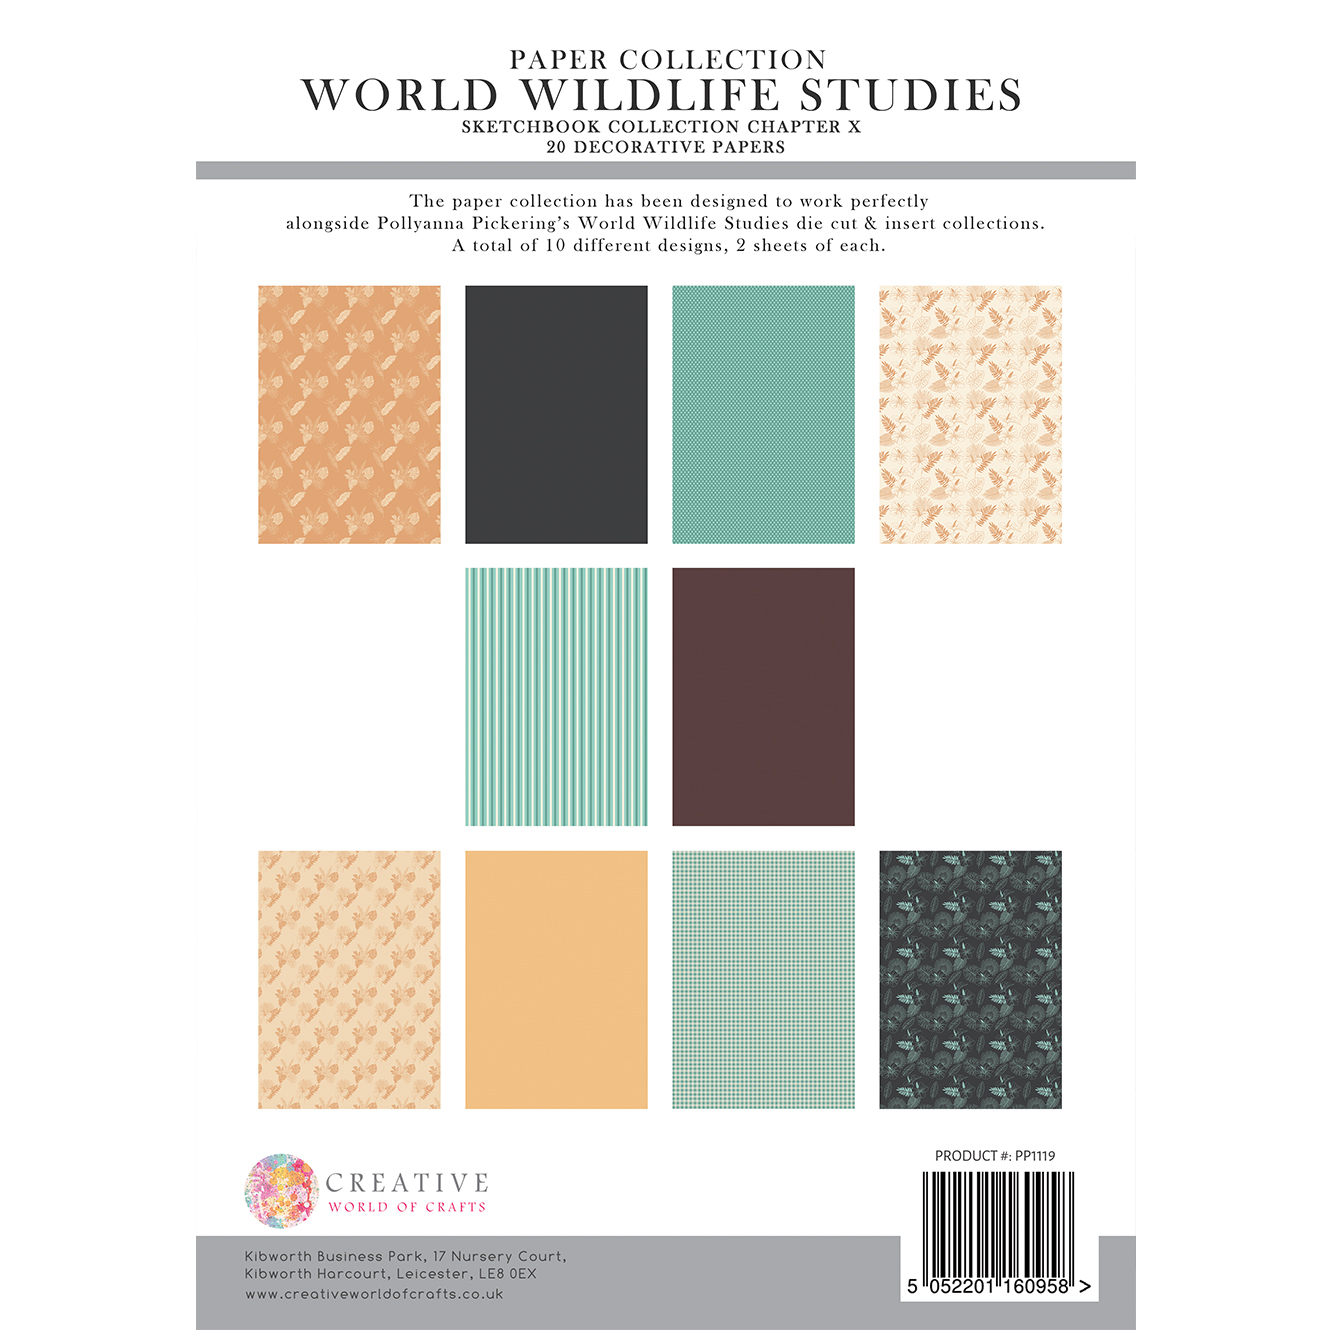 Pollyanna Pickering's Sketchbook Collection Chapter X World Wildlife Studies – Backing Papers